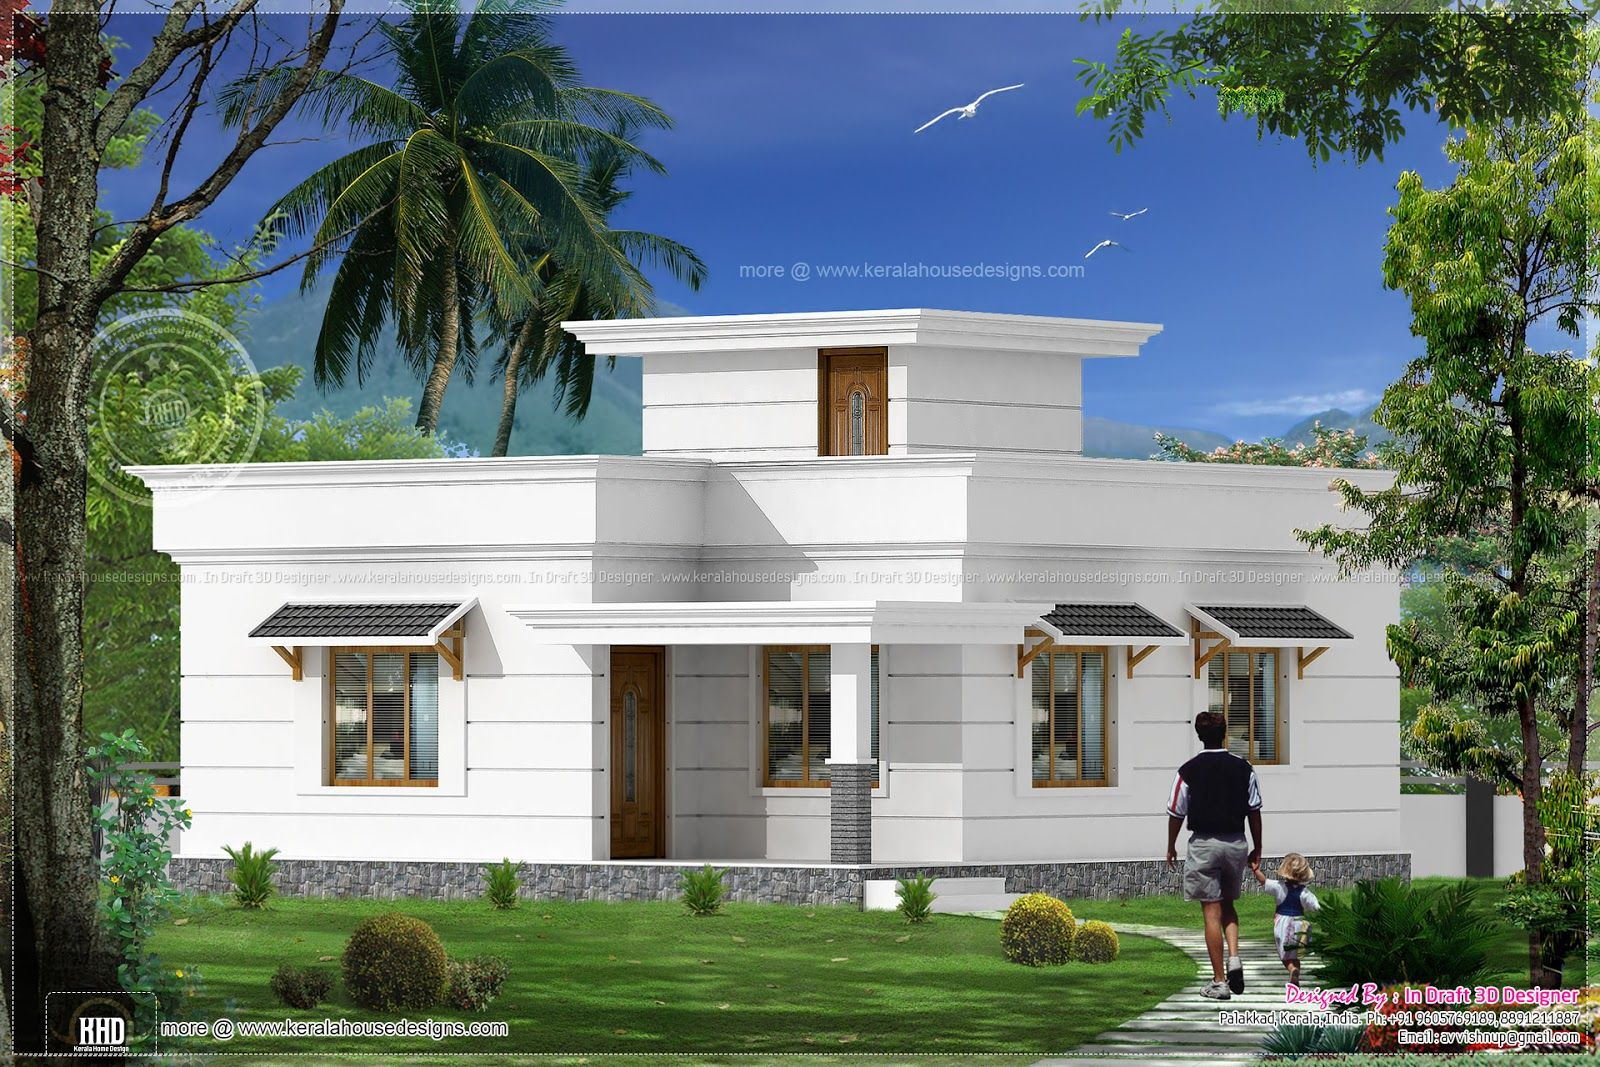 Thoughtskoto also best gila house images in floor plans diy ideas rh pinterest